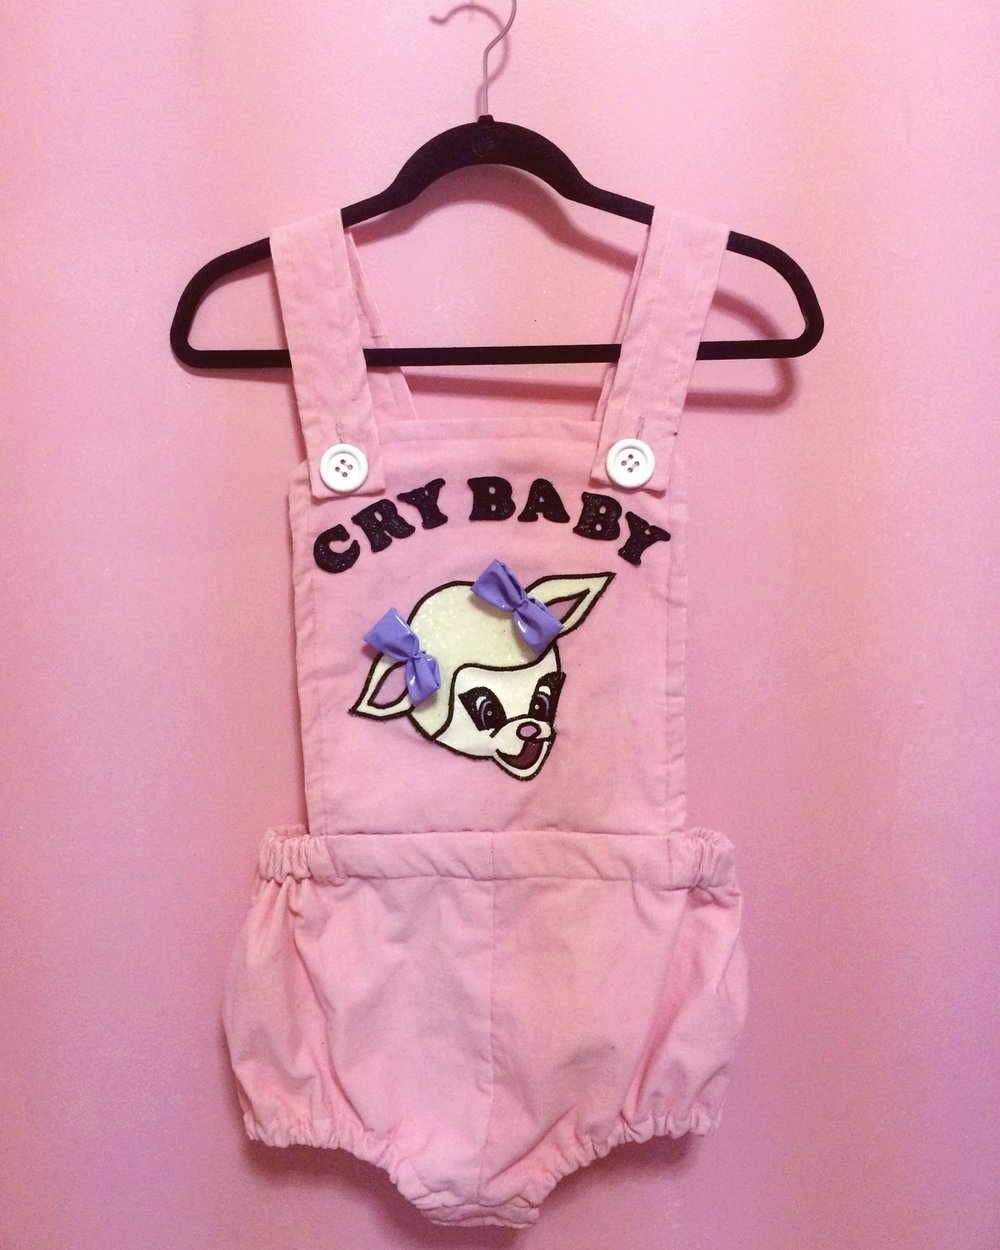 2016 Crybaby Romper collaboration for Melanie Martinez